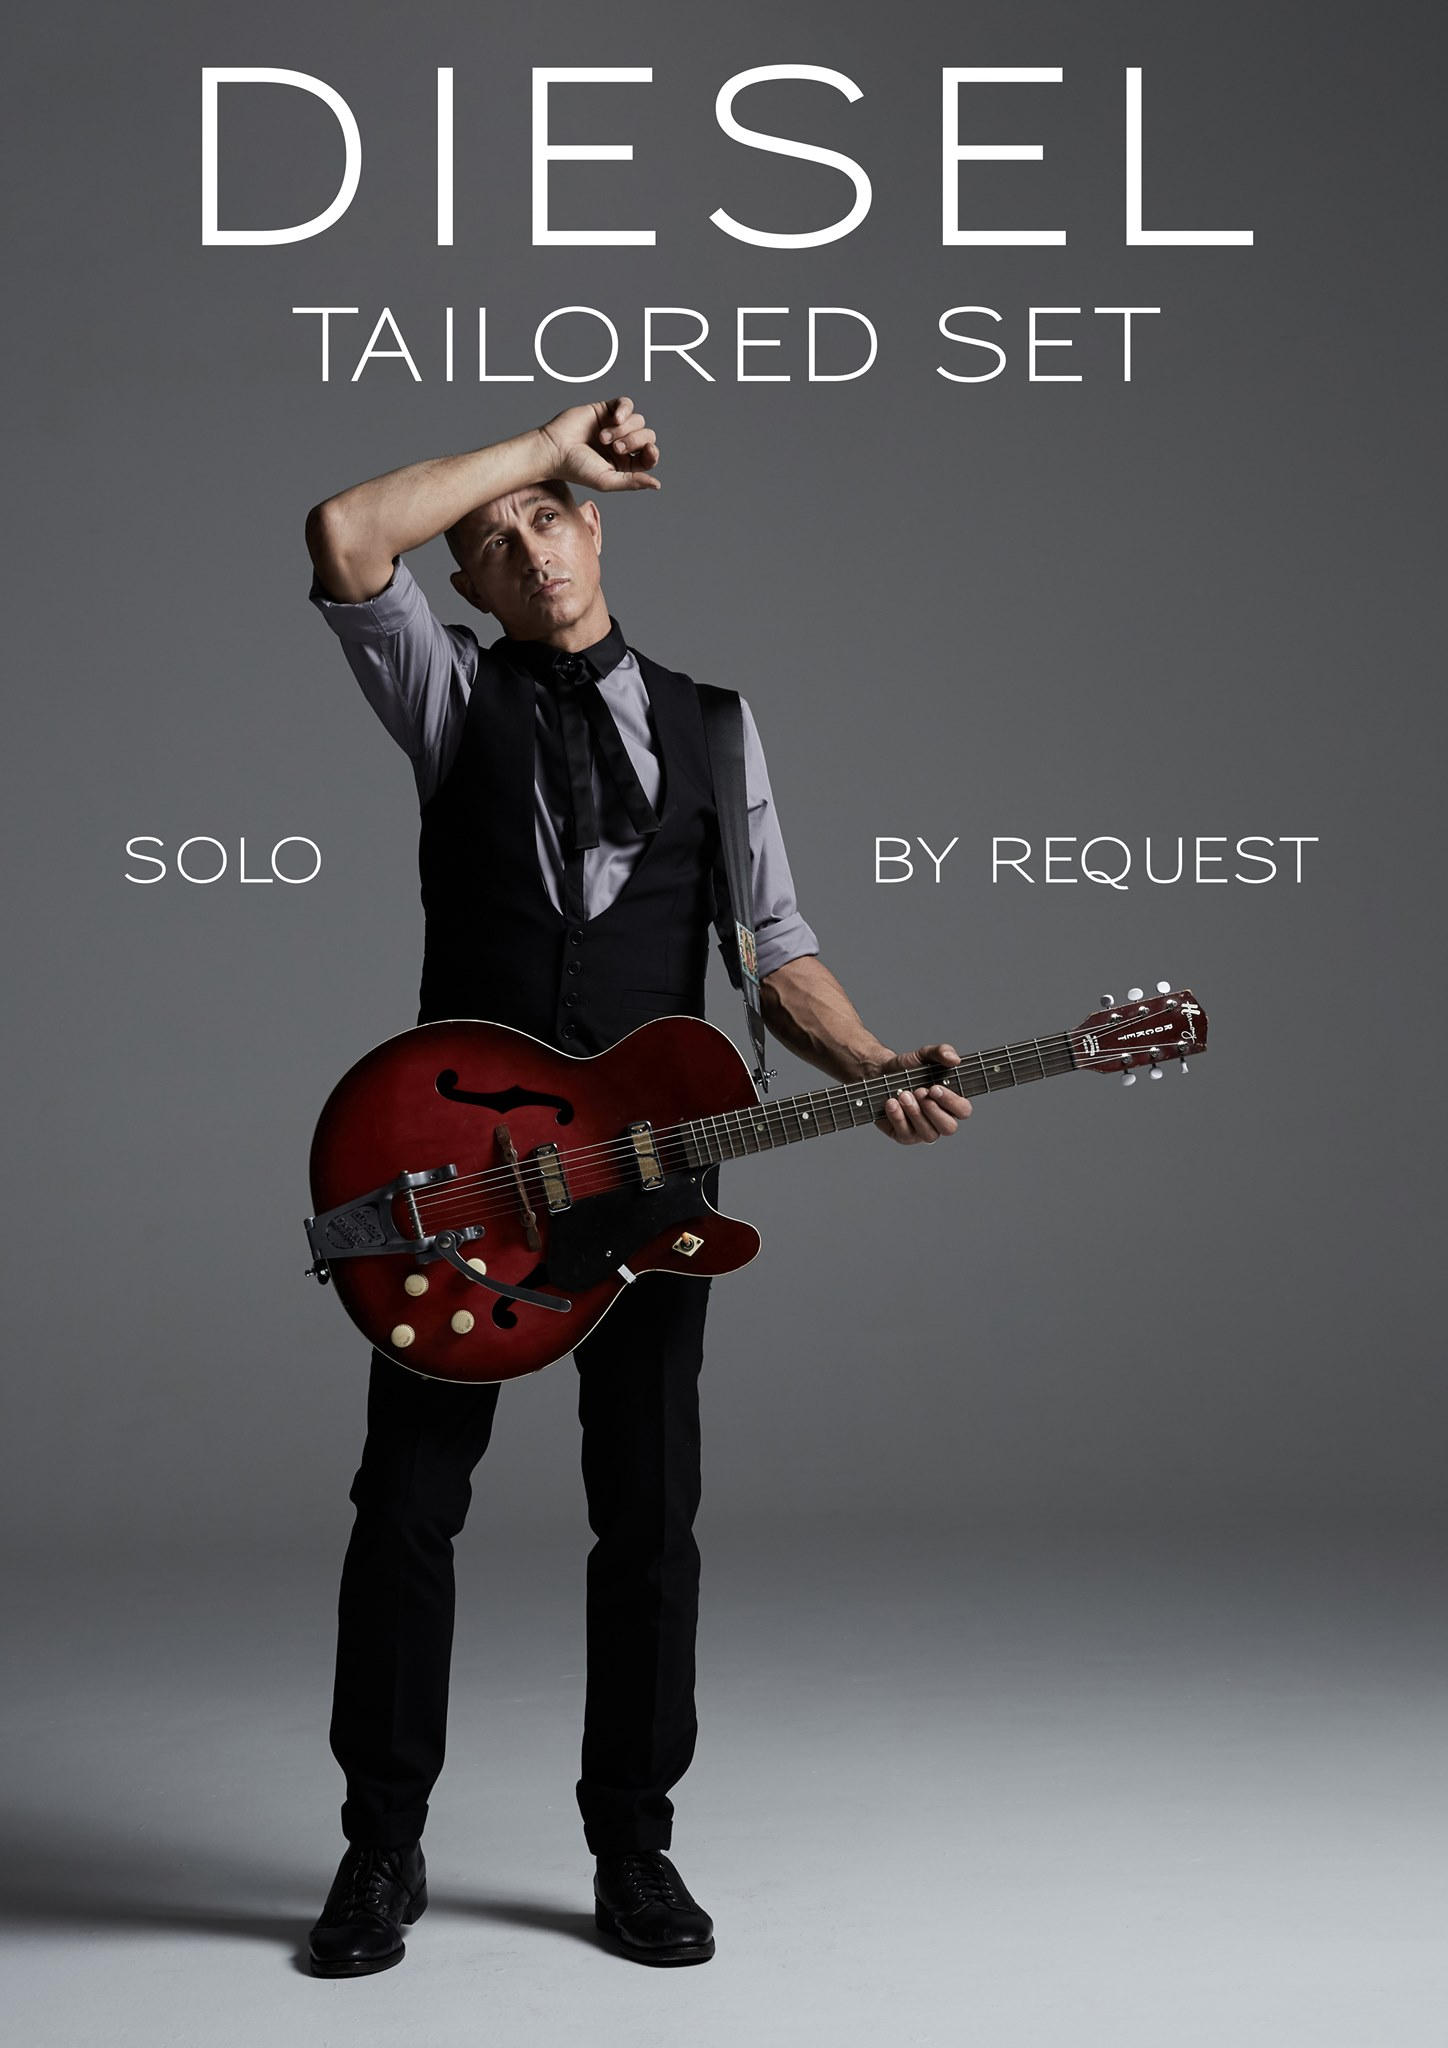 Diesel   Tailored Set   Solo By Request